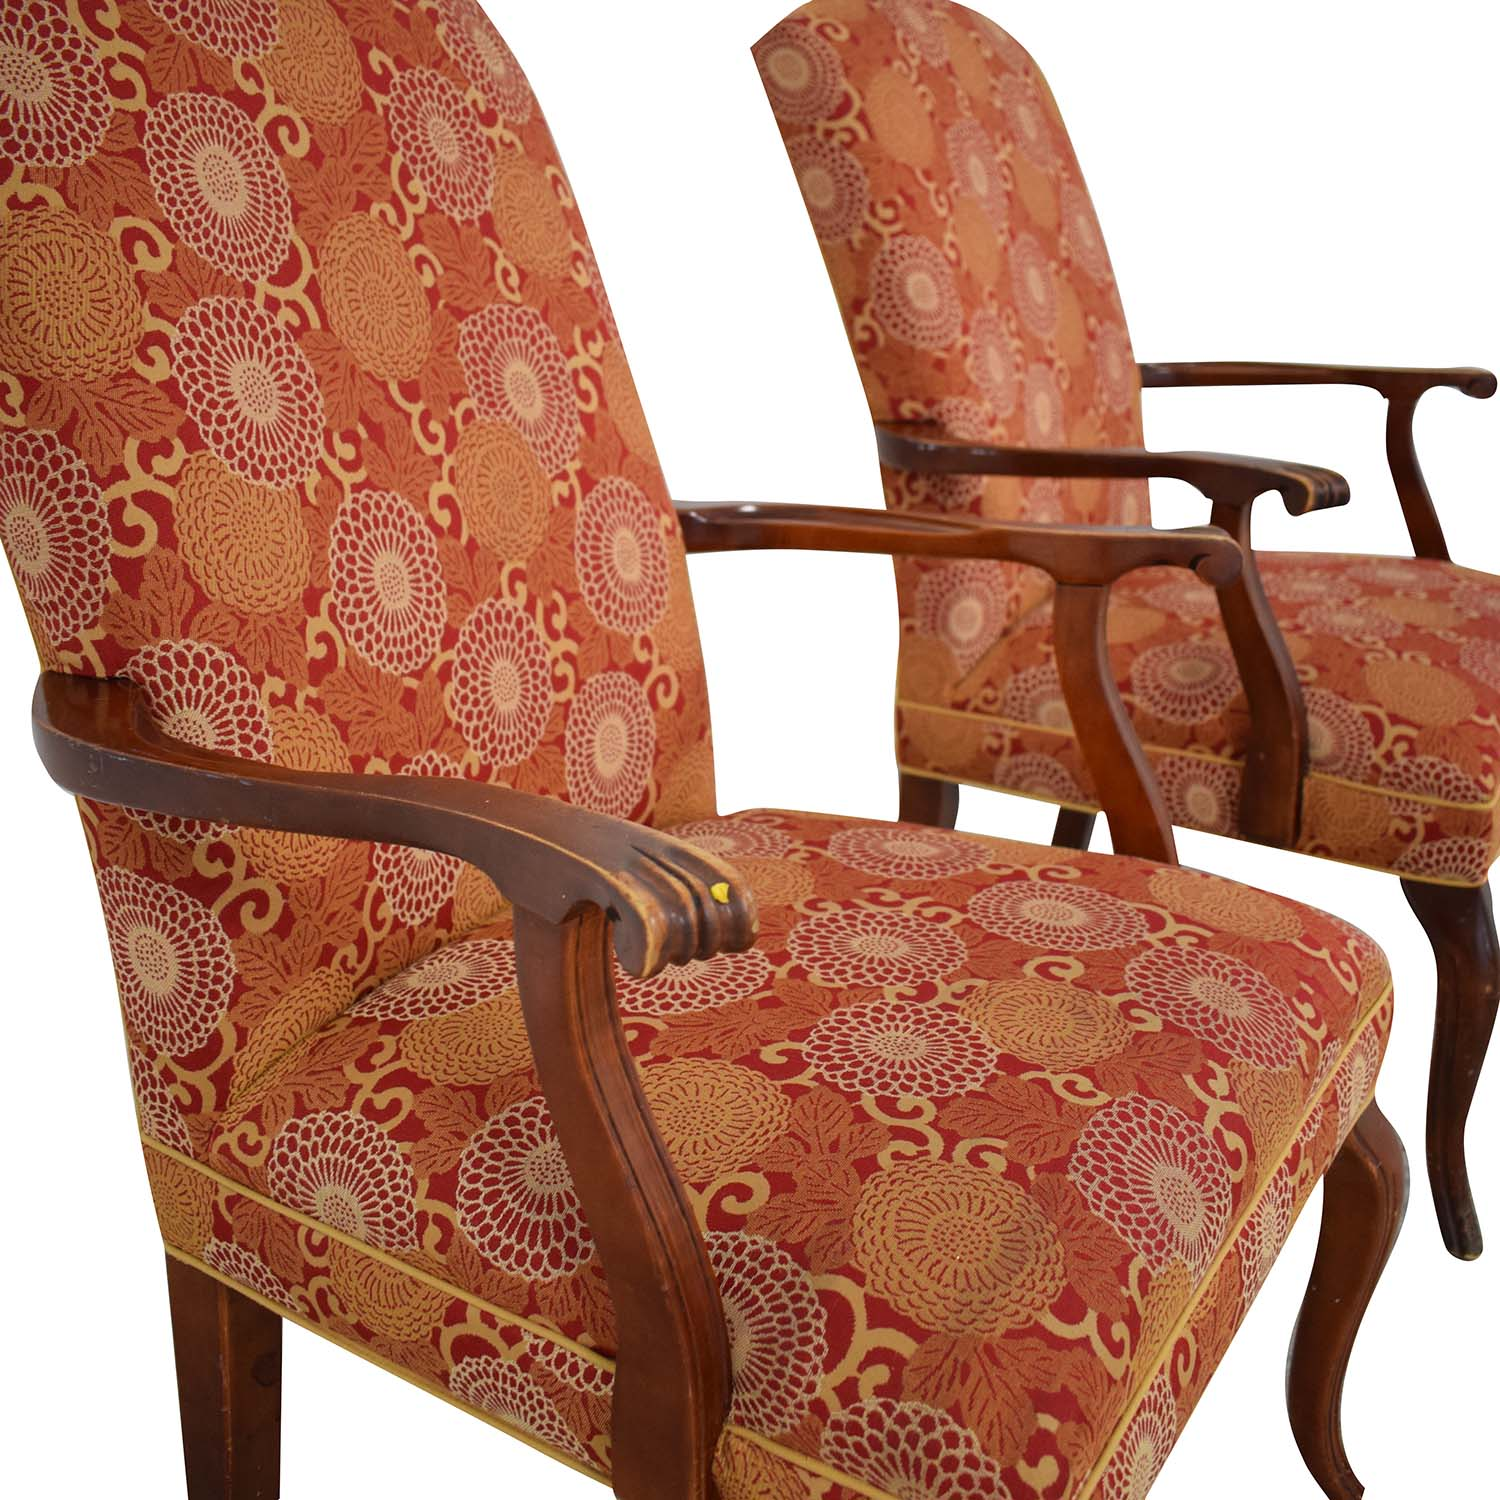 Ethan Allen Ethan Allen Patterned Armchairs Dining Chairs